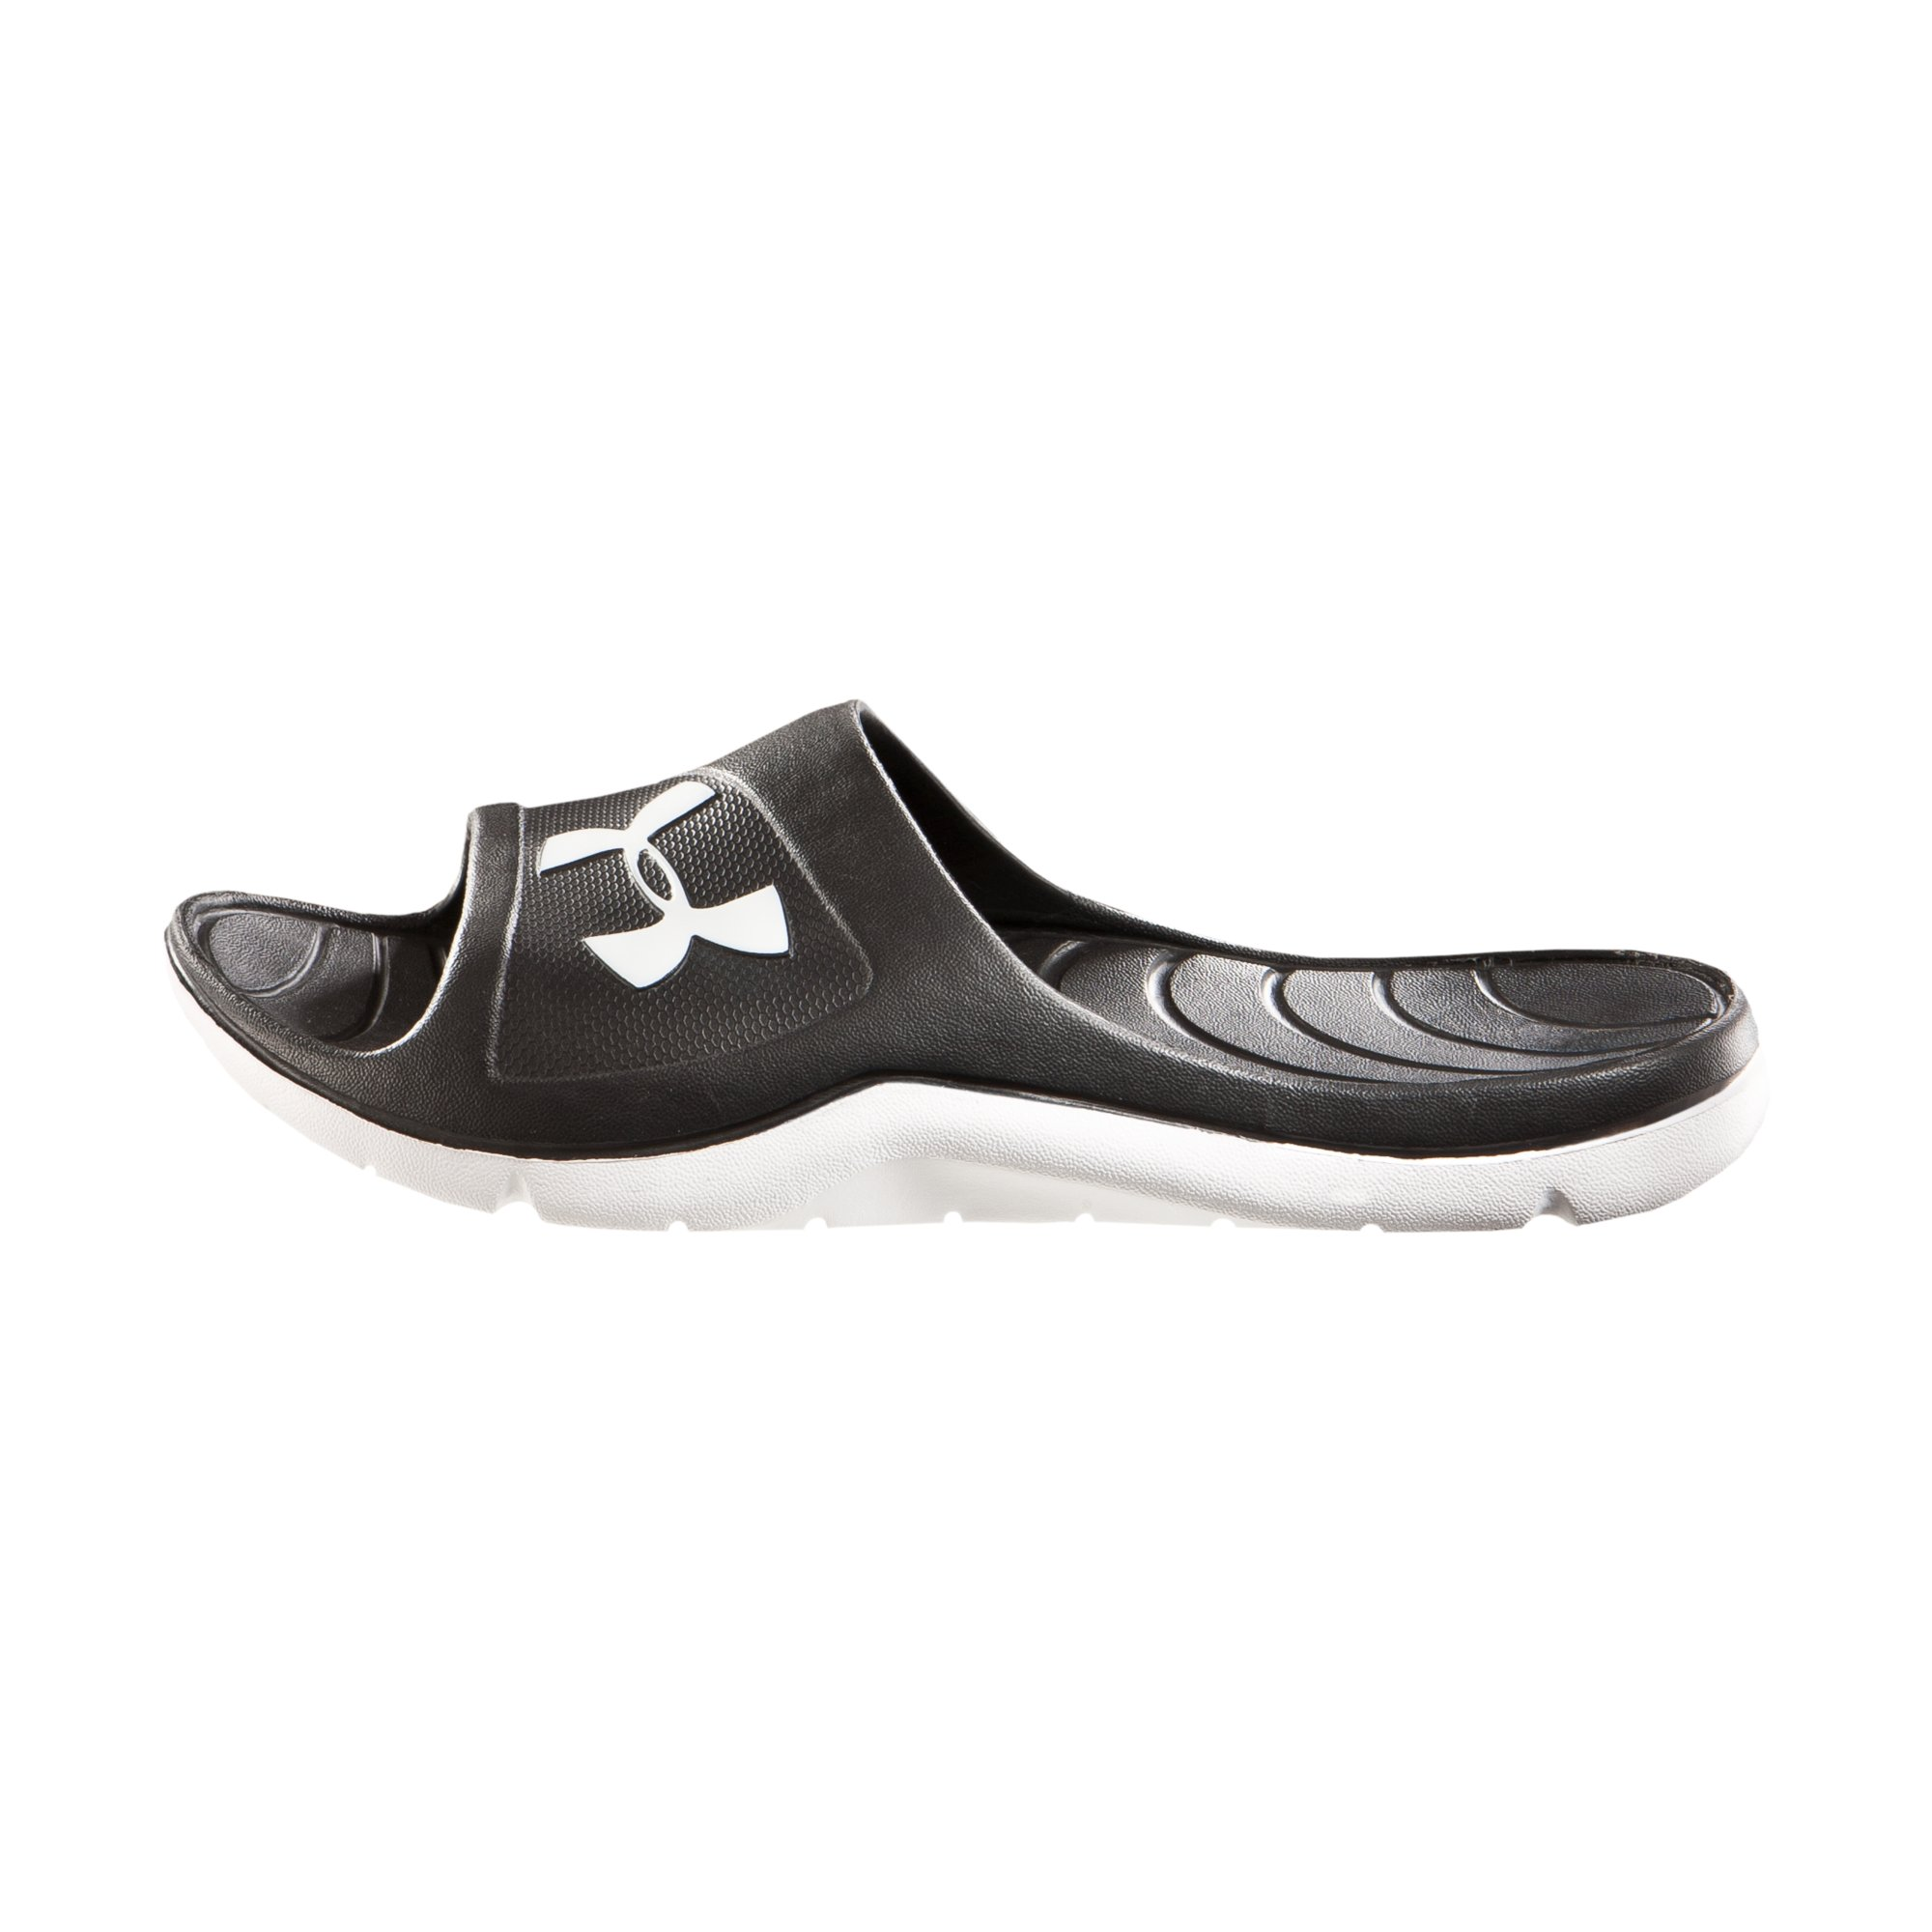 Do Under Armour Shoes Run Small